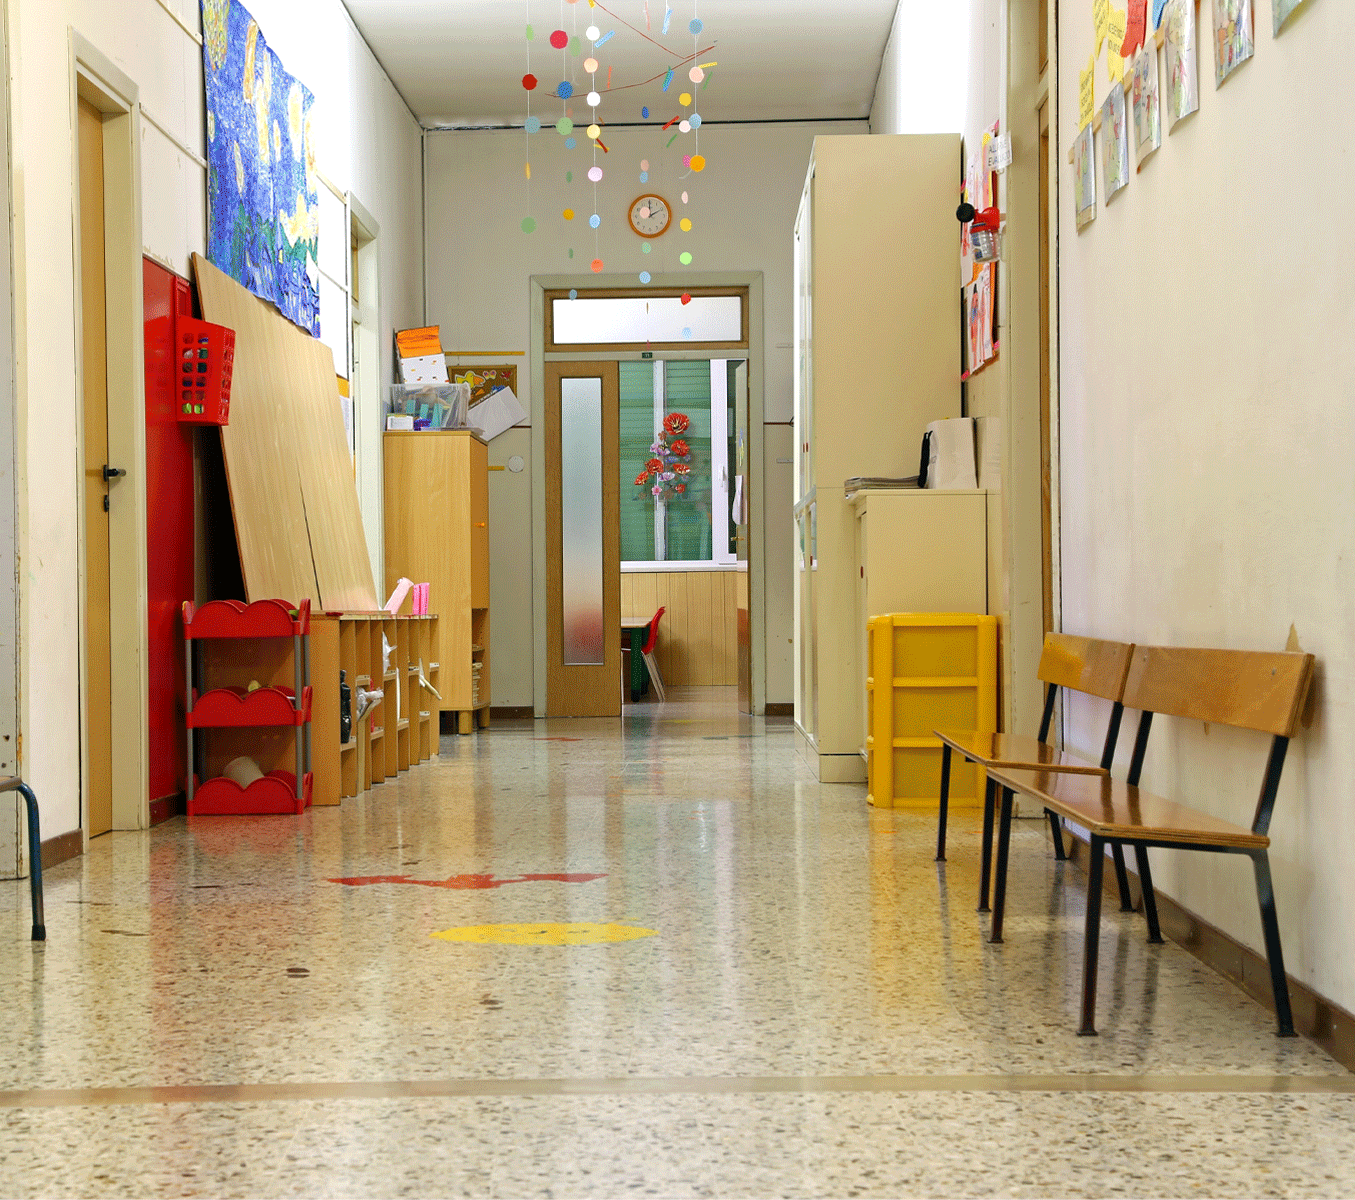 Deep cleaning for schools